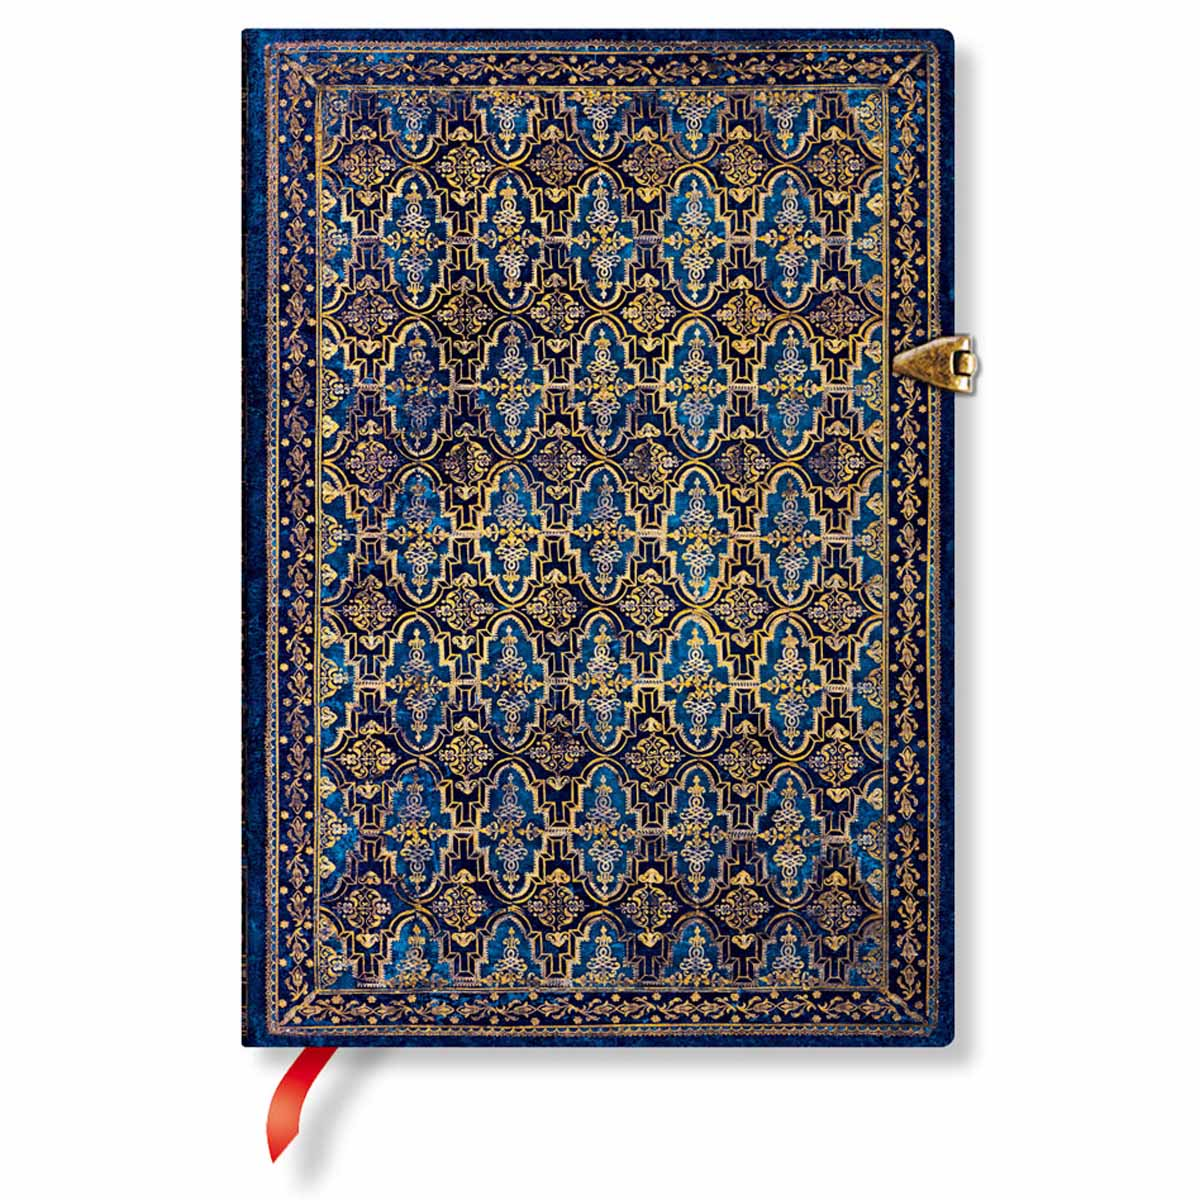 Paperblanks Blue Rhine Midi 5 x 7 Inch Hardcover journal